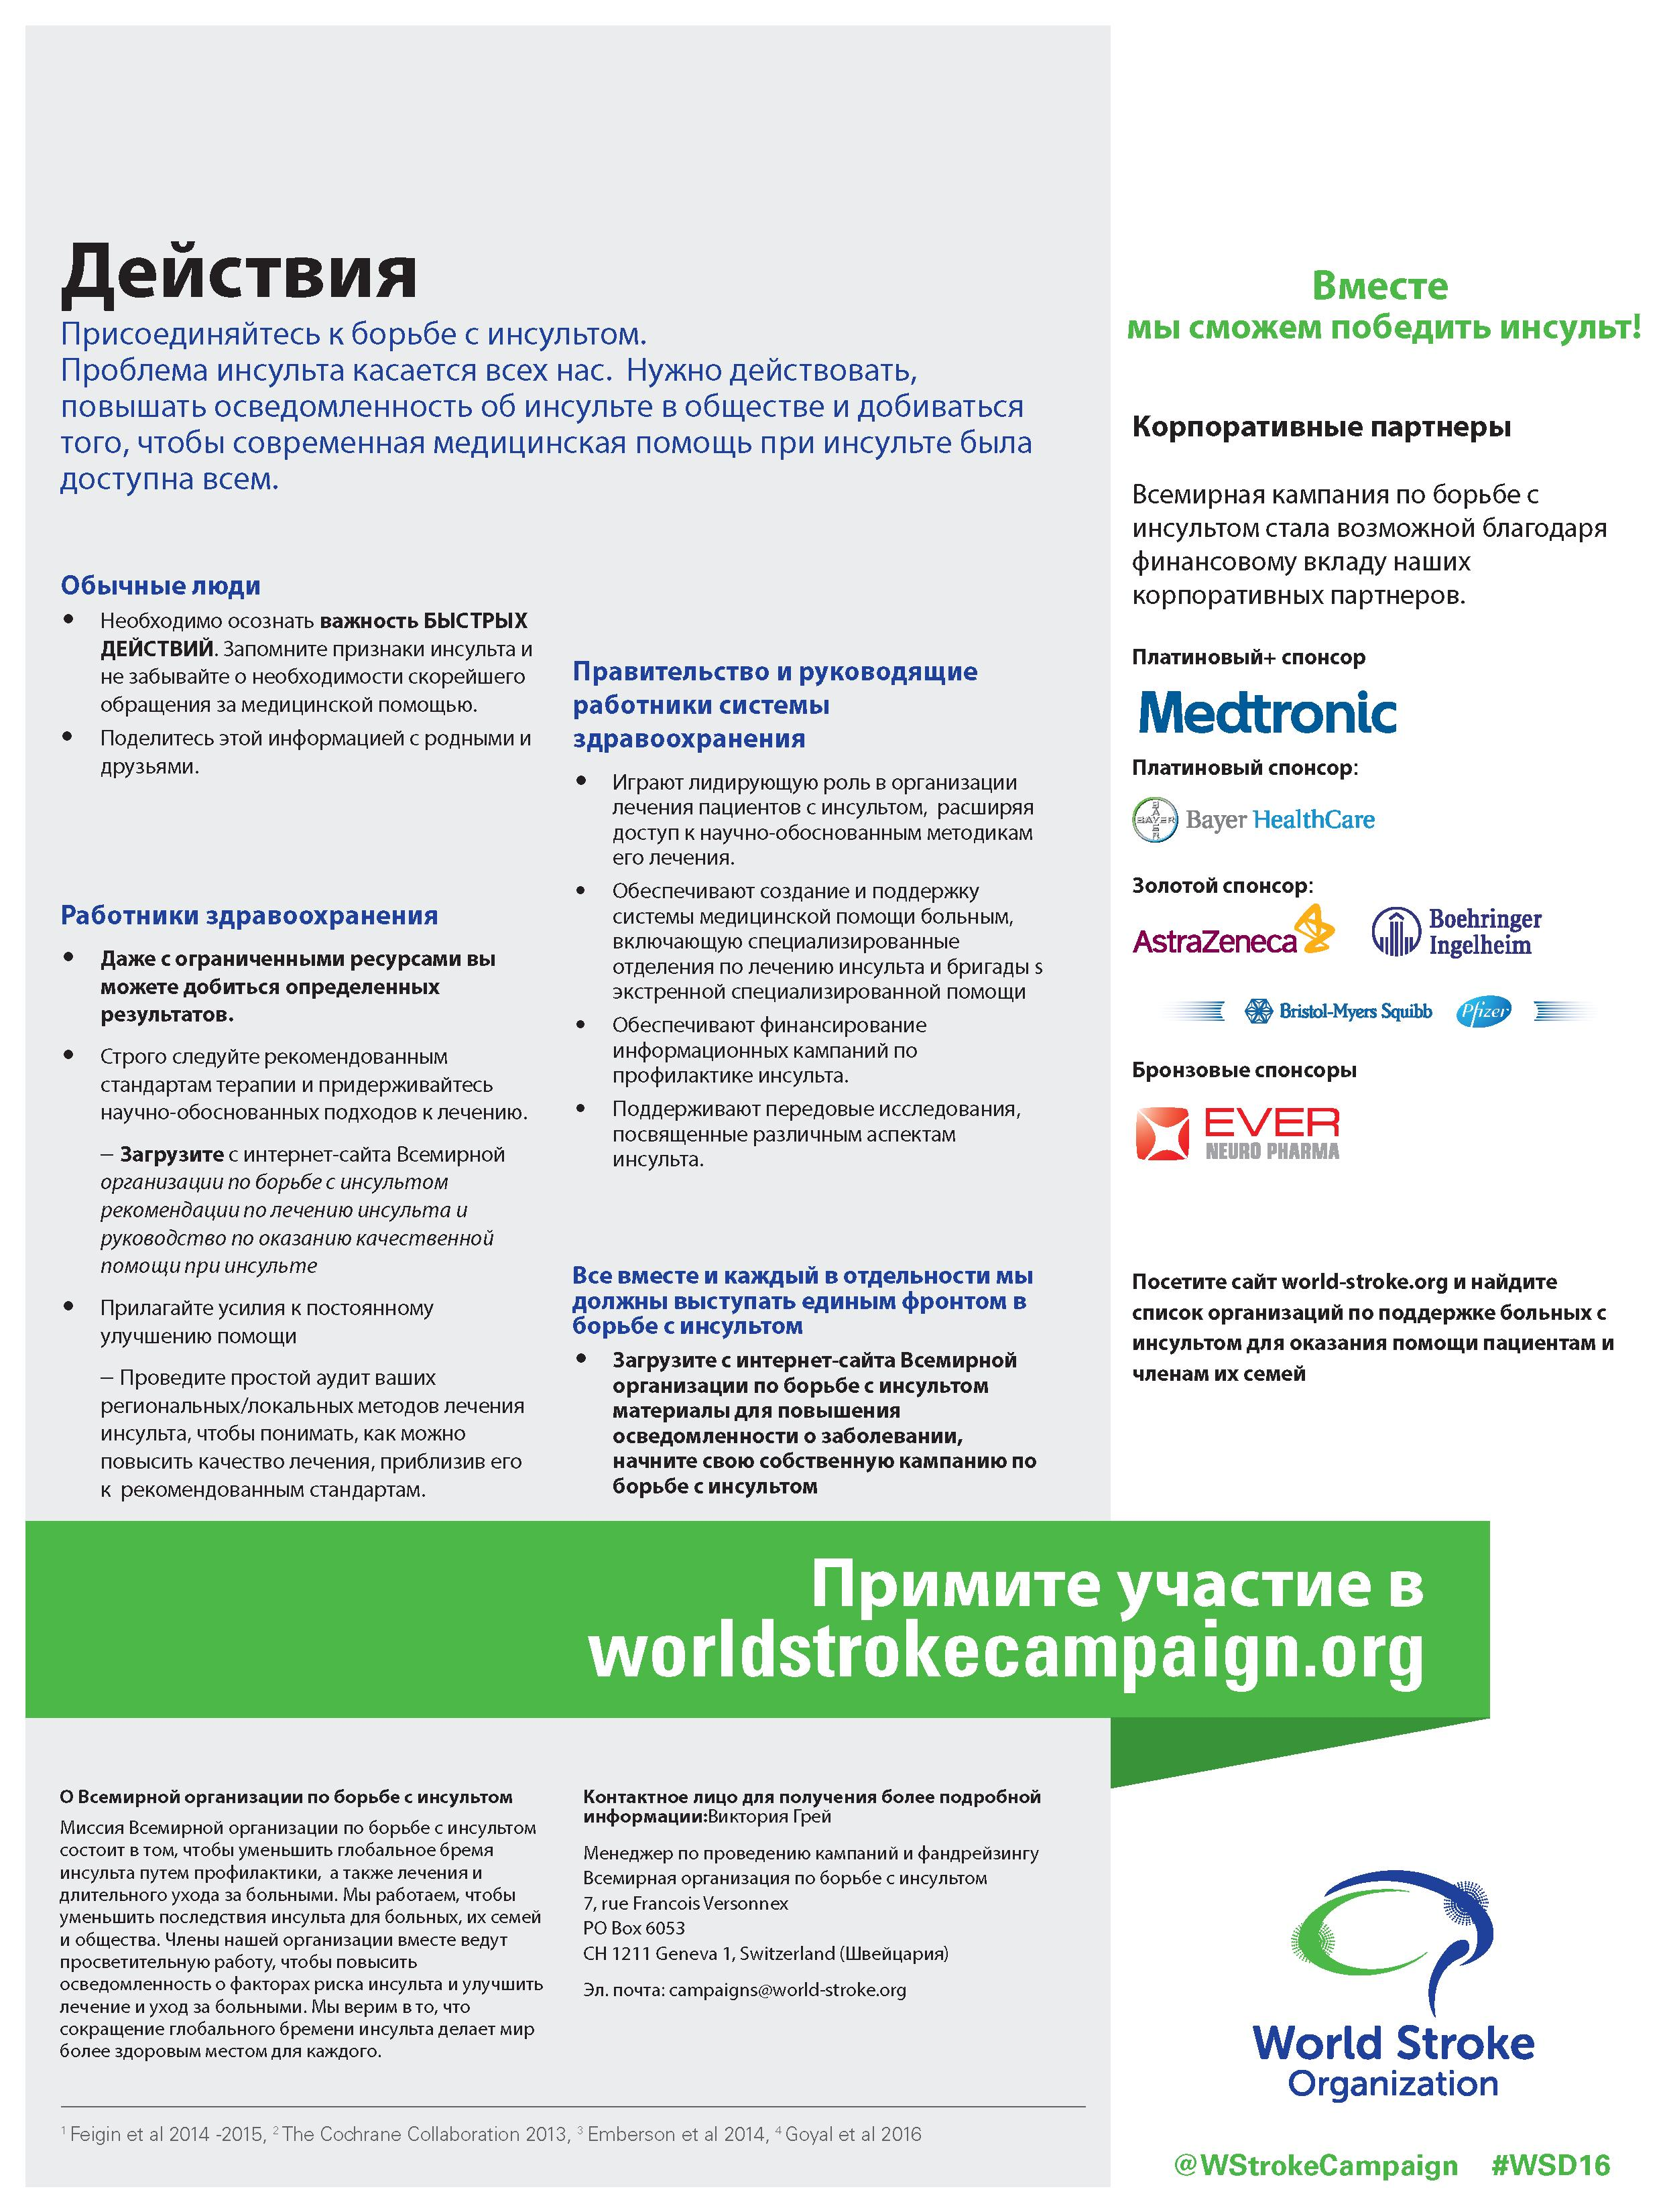 russian-world-stroke-day-2016-brochure-0004